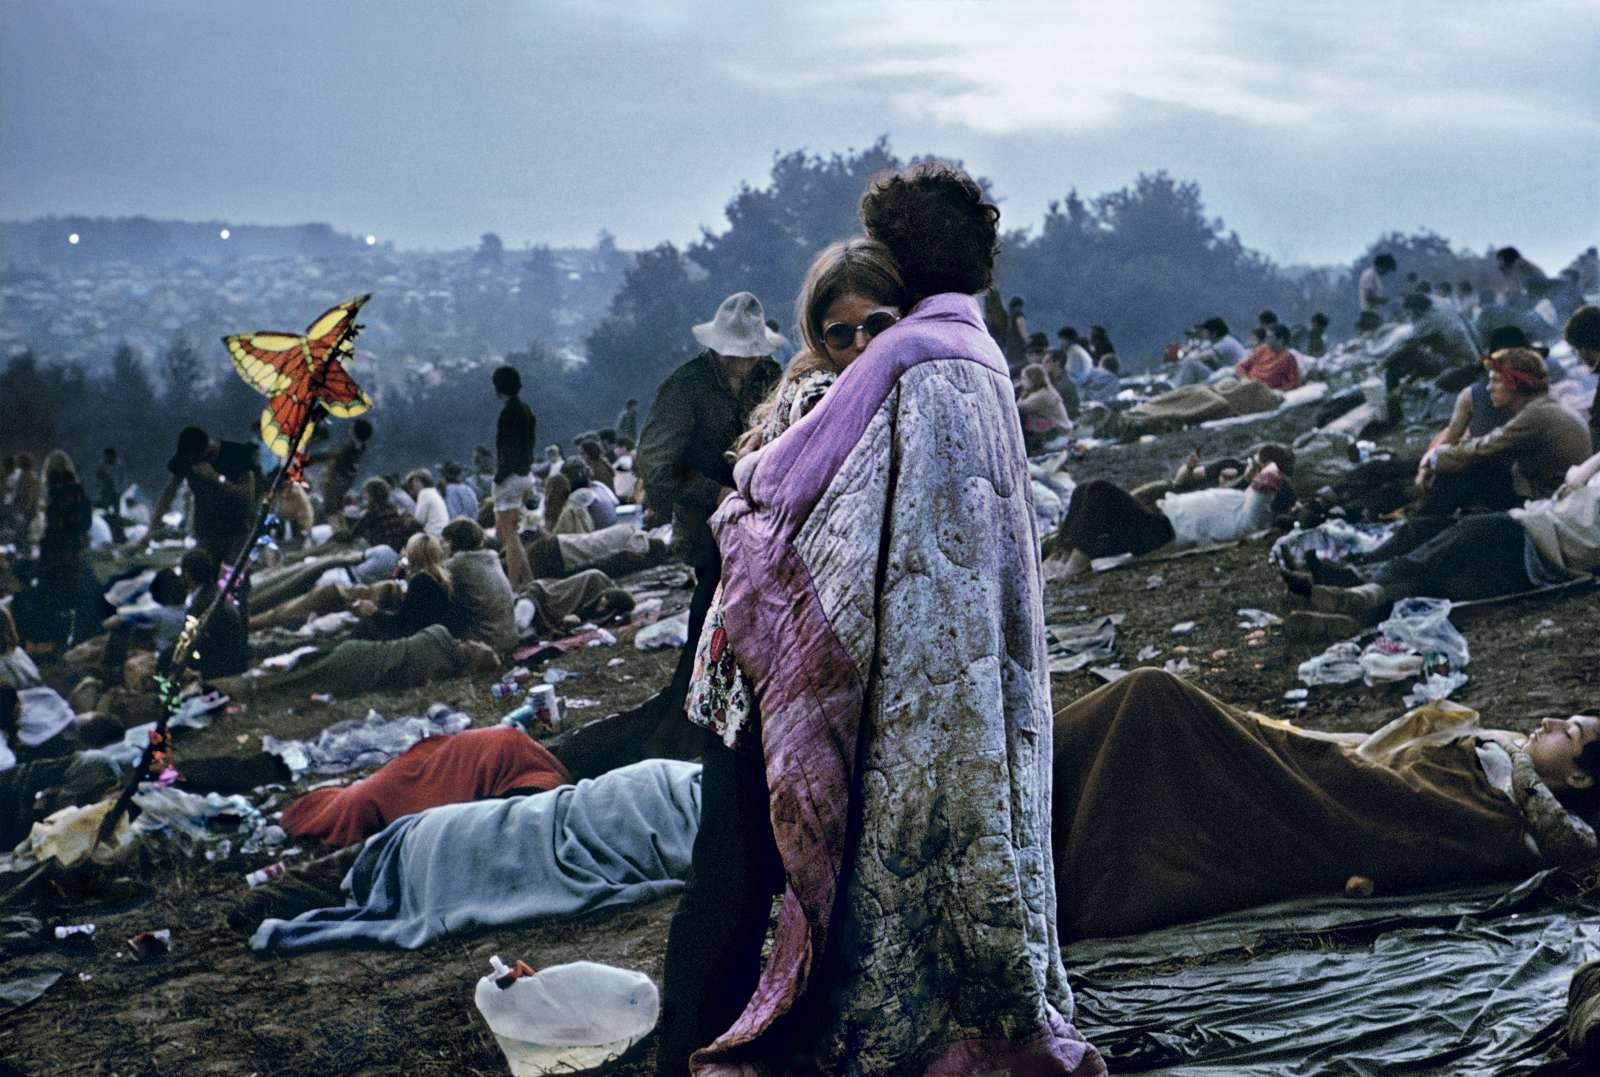 Woodstock at 50, in the words, and music, of those who were there